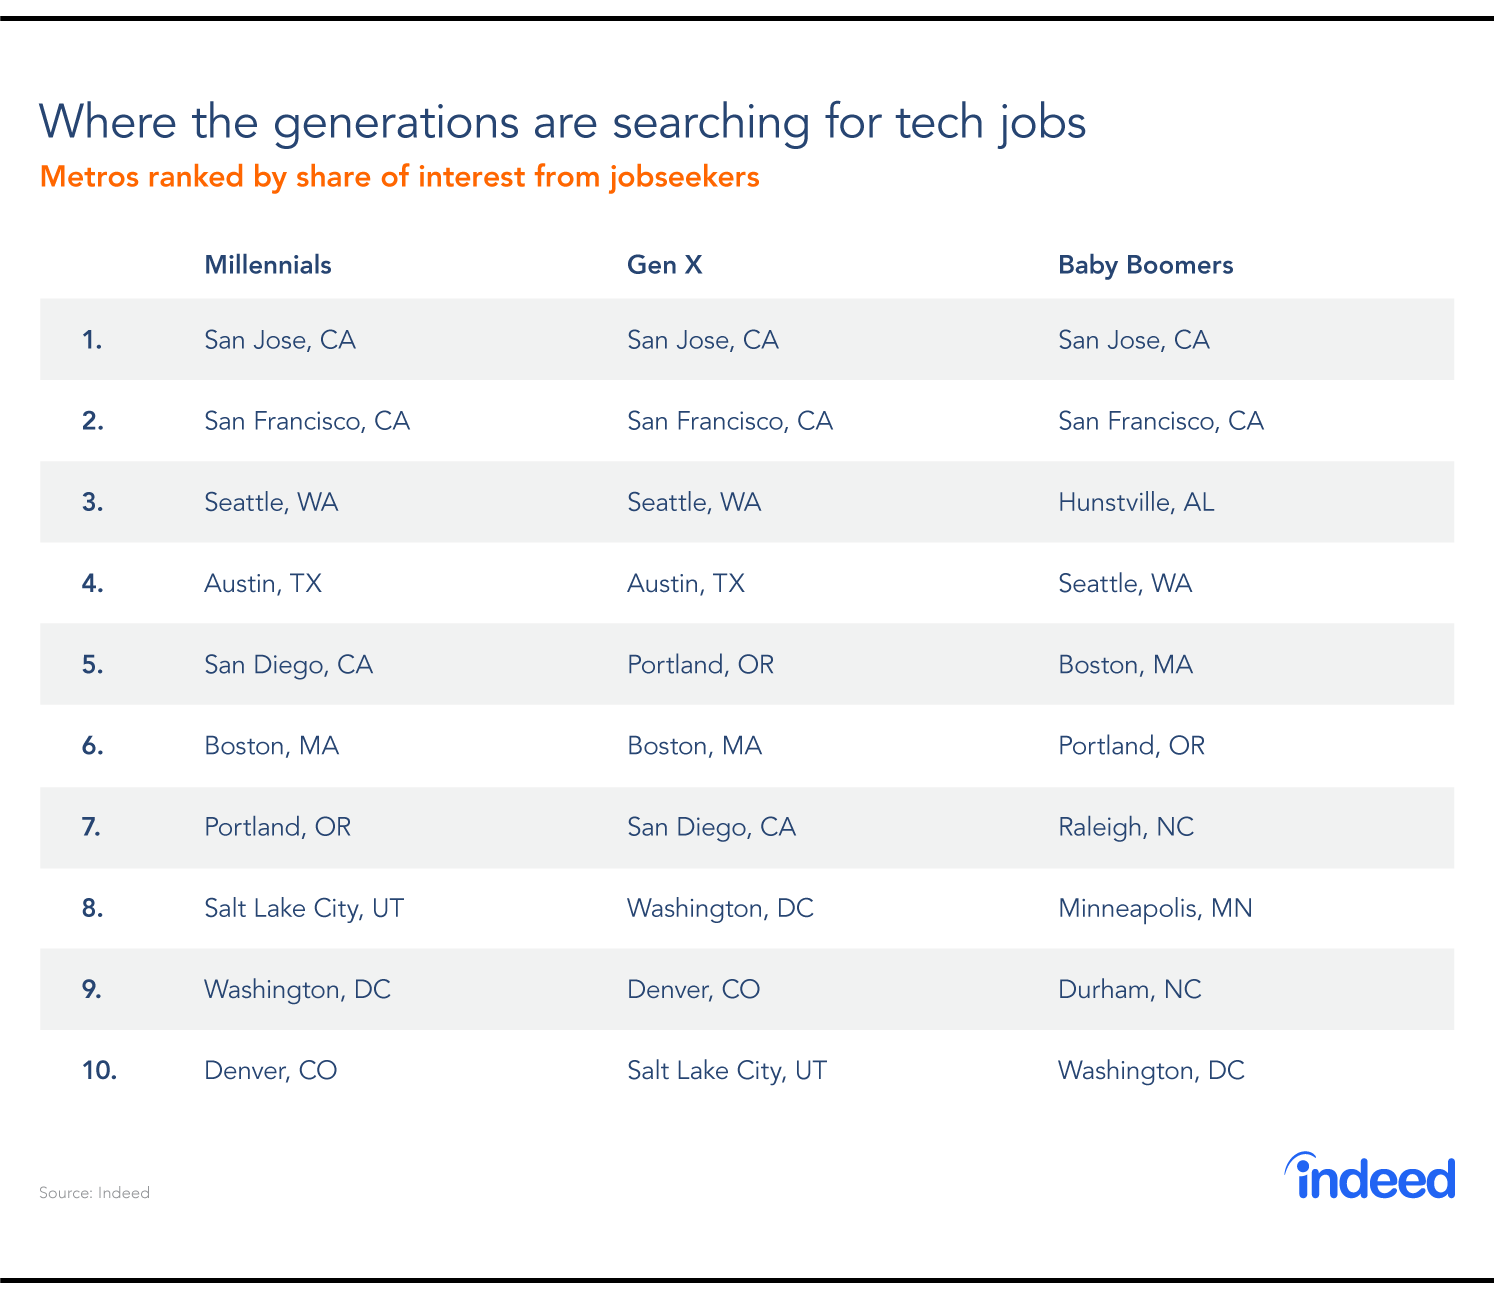 Chart: Where the generations are searching for tech jobs